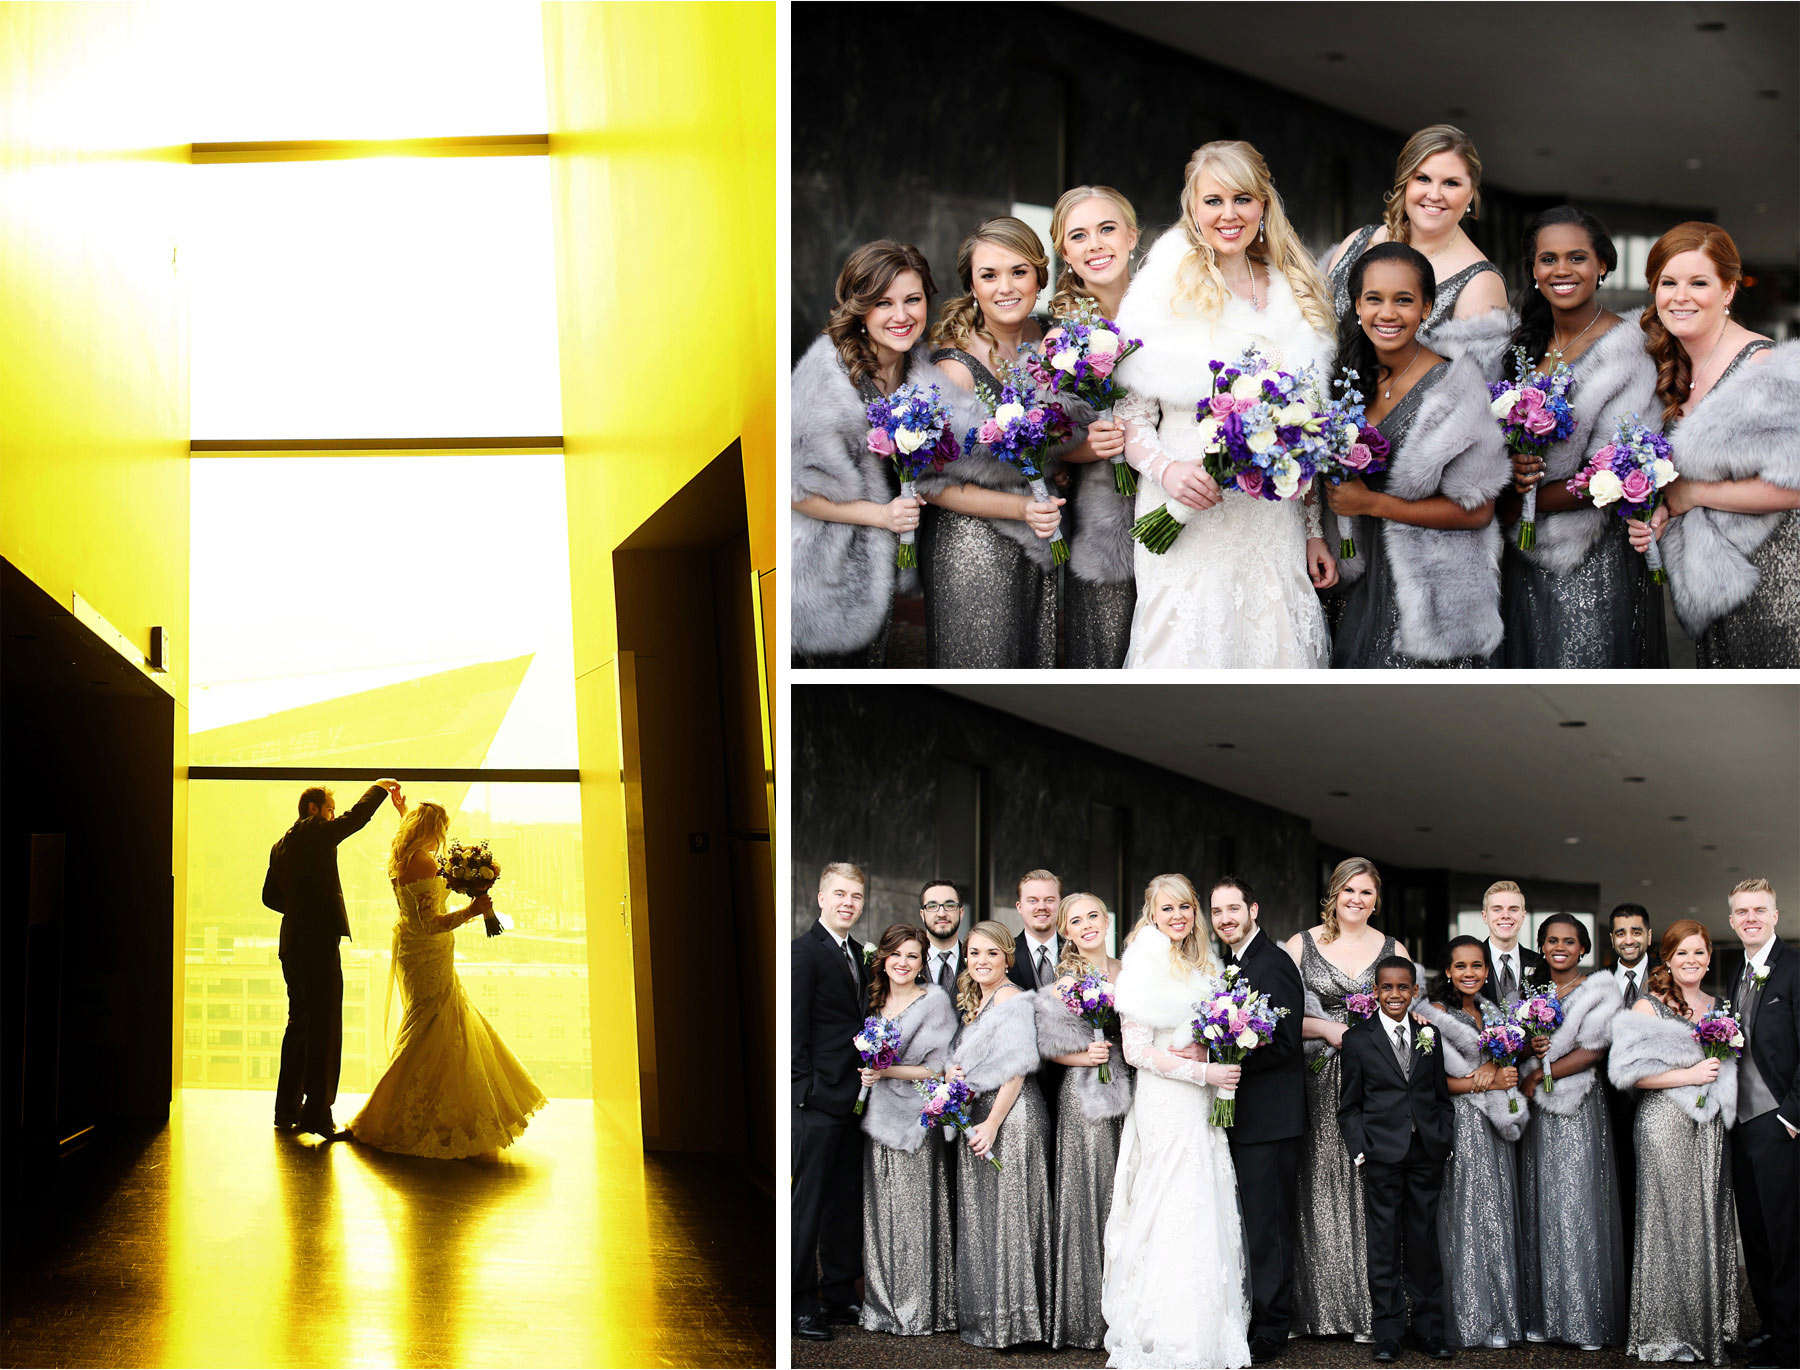 10-Minneapolis-Minnesota-Wedding-Photographer-by-Andrew-Vick-Photography-Winter-Guthrie-Theater-Millennium-Hotel-Bride-Groom-Bridal-Party-Bridesmaids-Groomsmen-Level-Nine-Yellow-Room-Downtown-Jennifer-and-Phillip.jpg